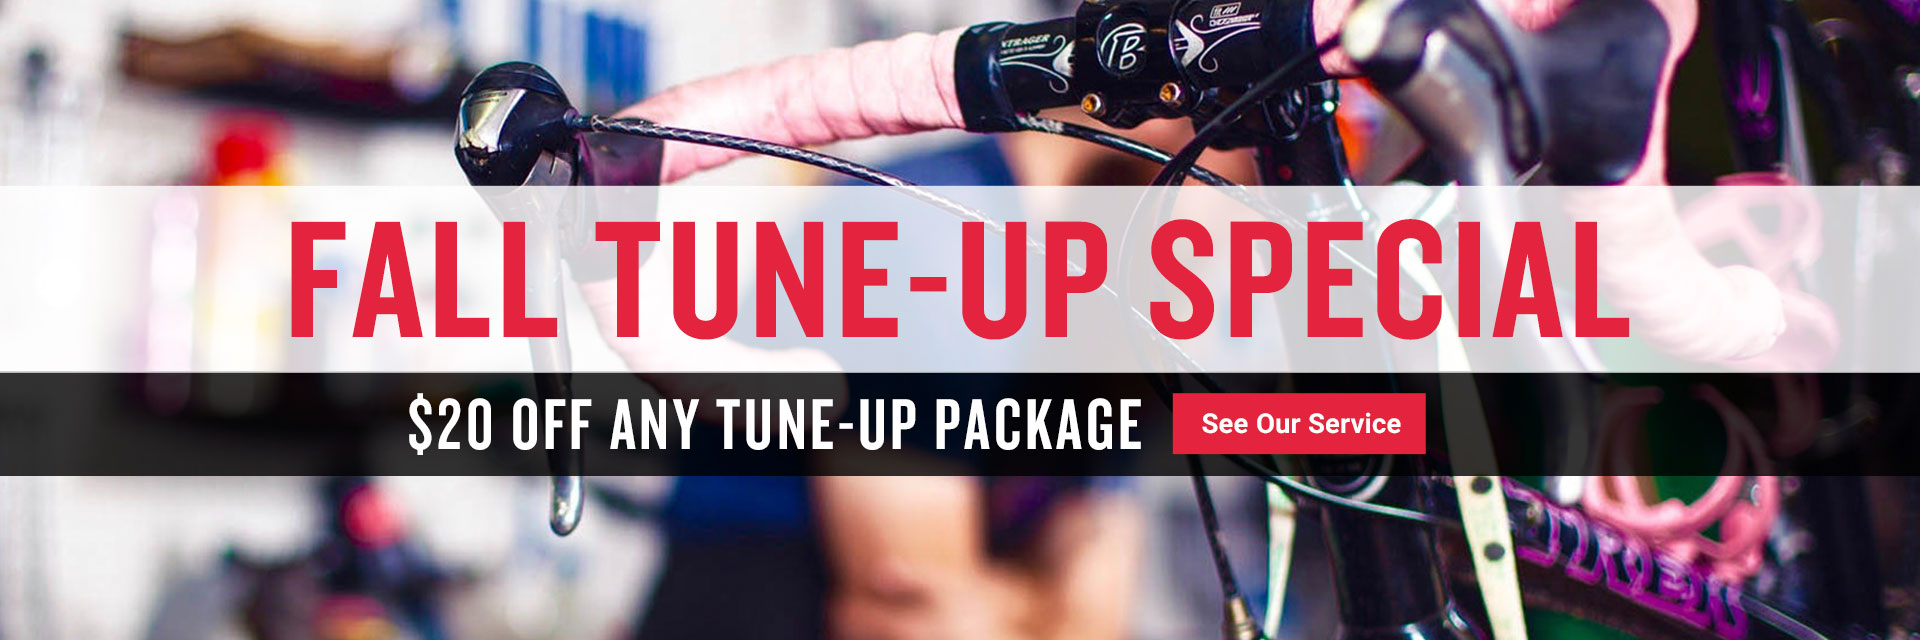 Save on your tune-up package